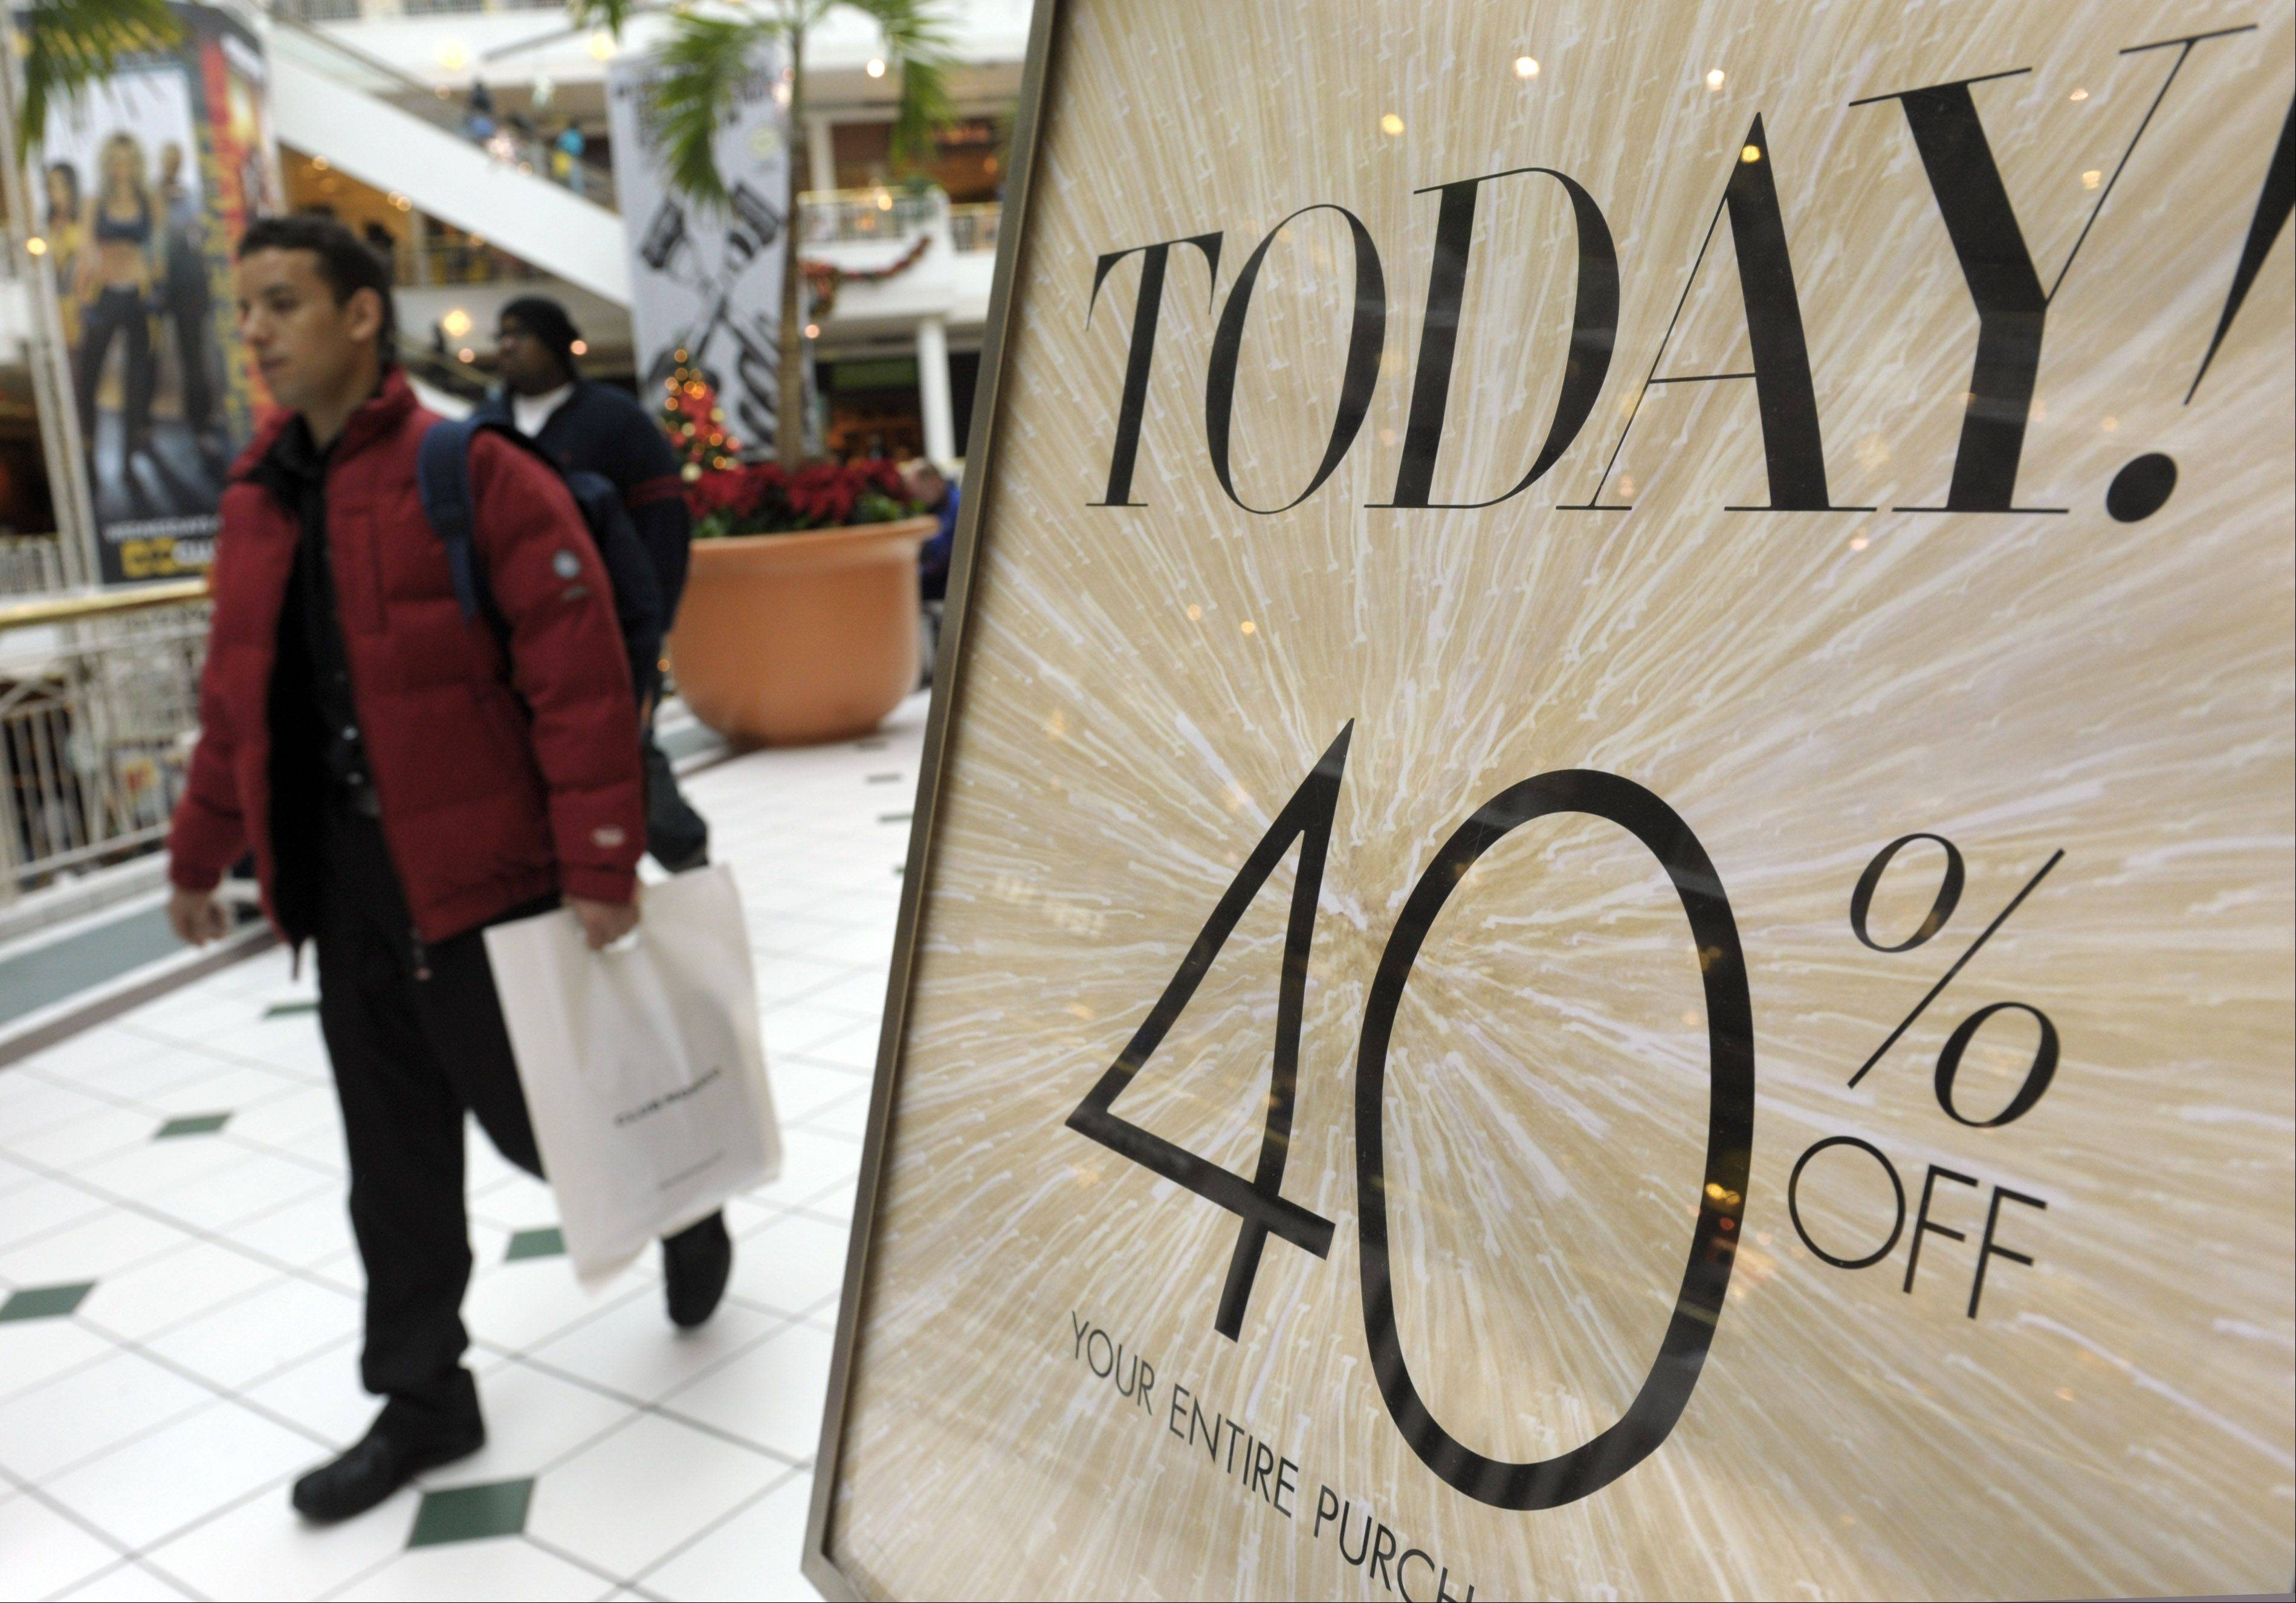 Holiday hiring by U.S. retailers may fall about 6.9 percent this year as shaky consumer confidence and more efficient store practices reduce demand for seasonal workers, according to Chicago-based Challenger, Gray & Christmas Inc.